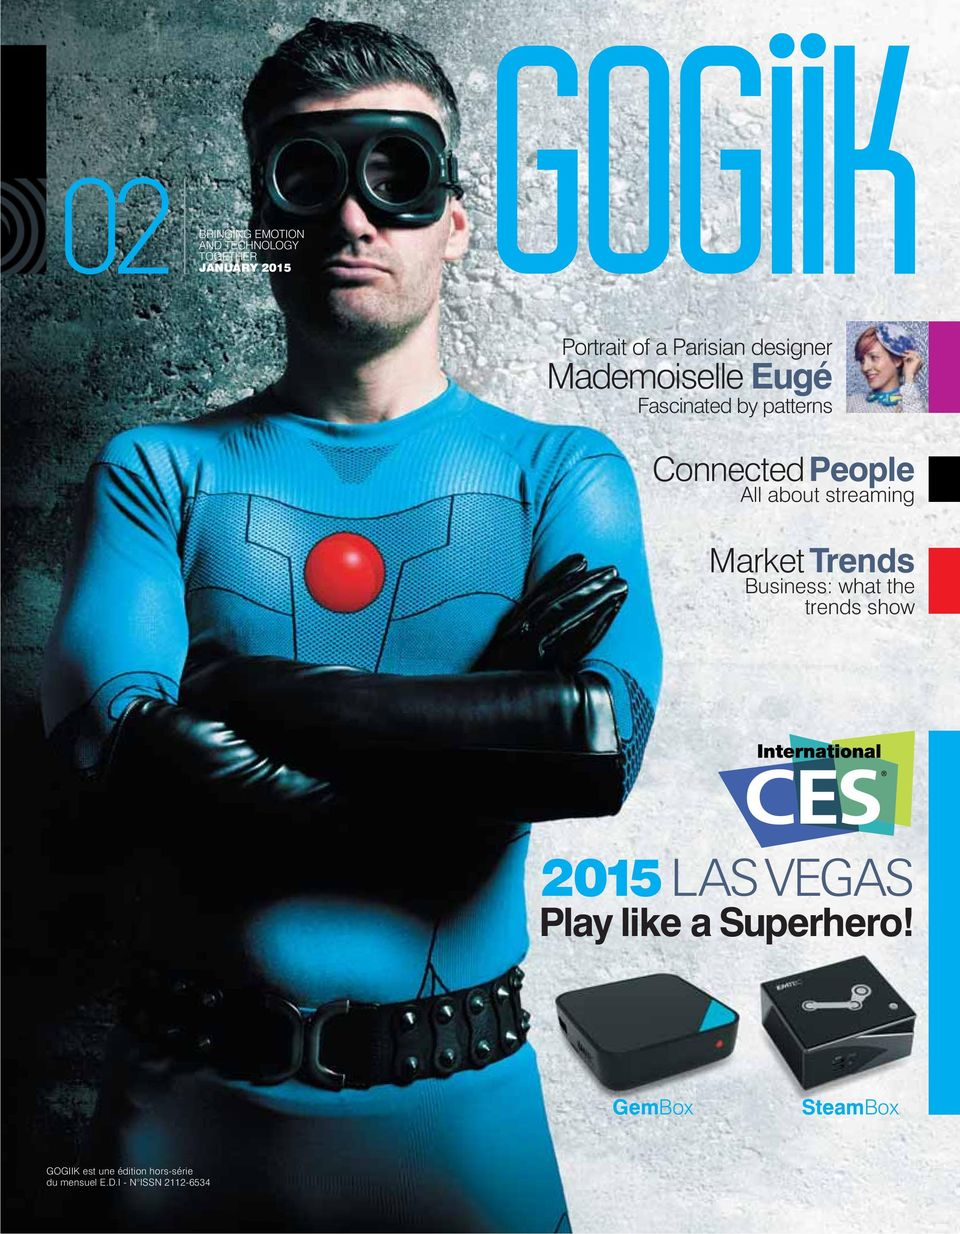 Business: what the trends show 2015 LAS VEGAS Play like a Superhero!